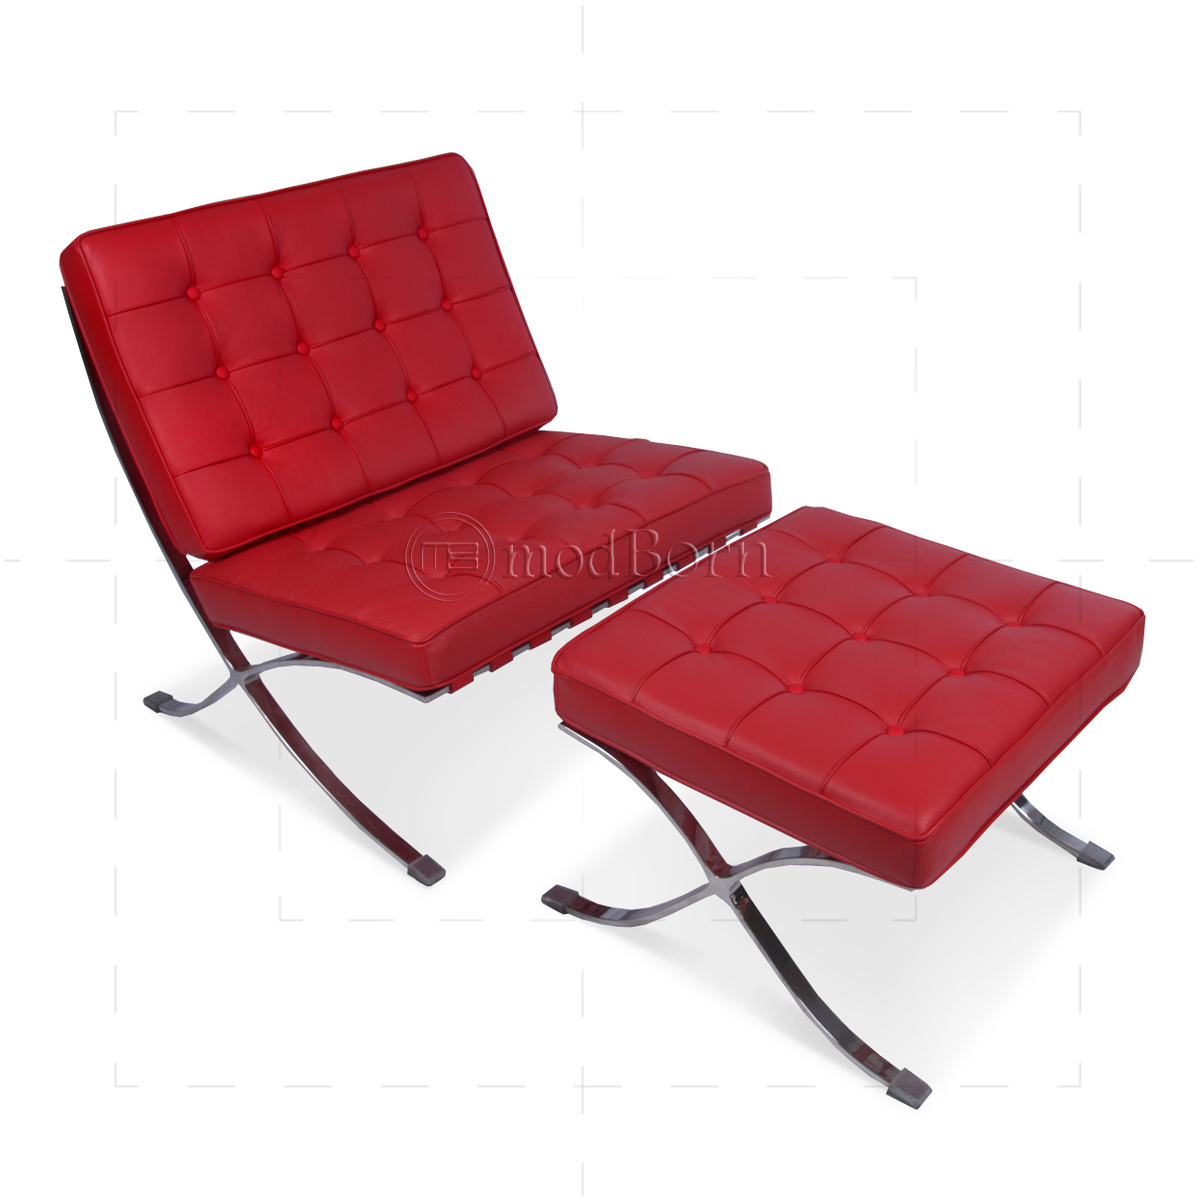 ludwig mies ven der rohe barcelona style chair red leather replica. Black Bedroom Furniture Sets. Home Design Ideas